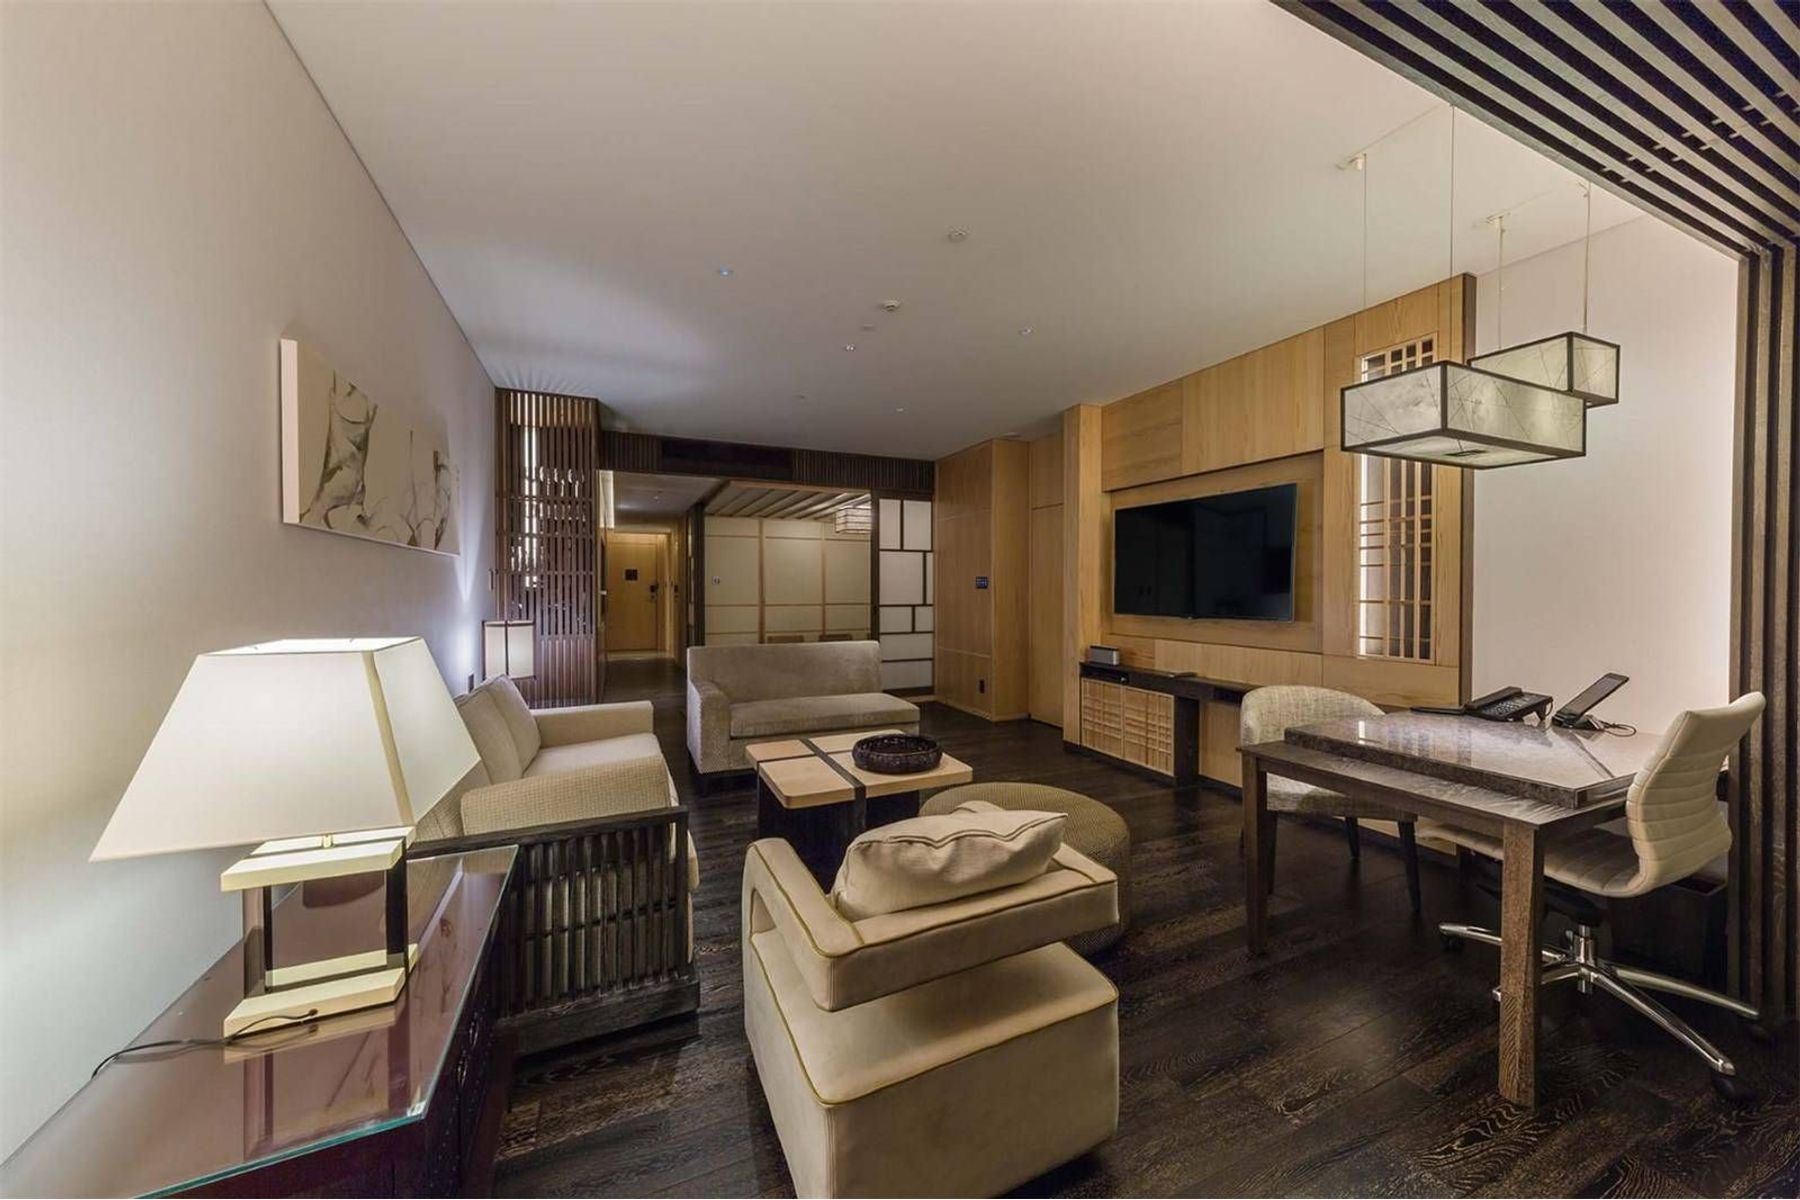 Condominiums for Sale at FOUR SEASONS HOTEL RESIDENCES KYOTO Sakura suit 2 Other Japan, Other Areas In Japan 605-0932 Japan